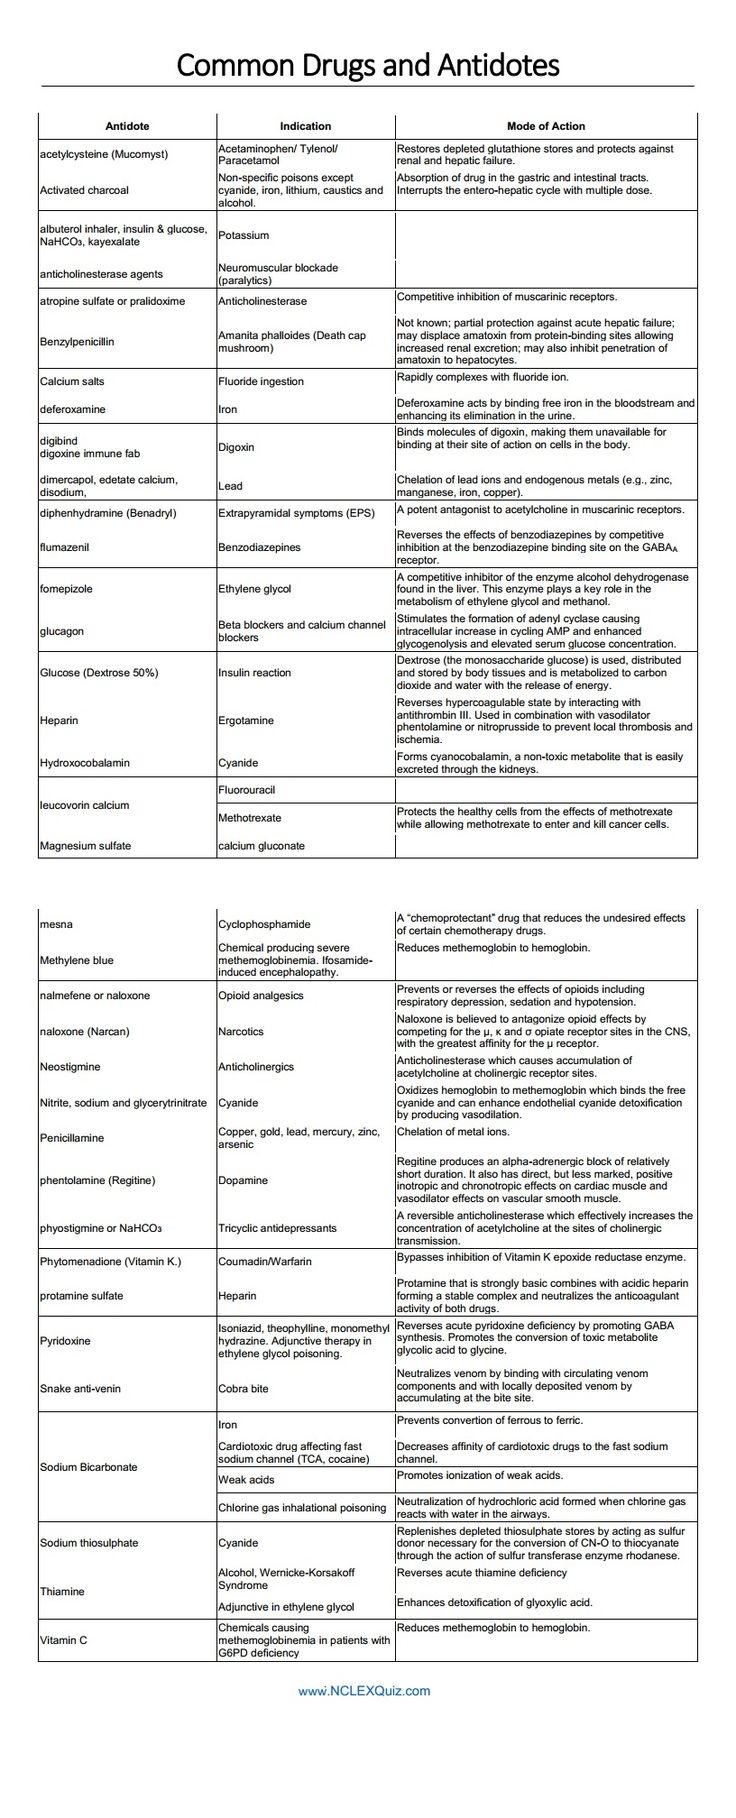 List of Common Drugs & Their Antidotes That Nurses Should